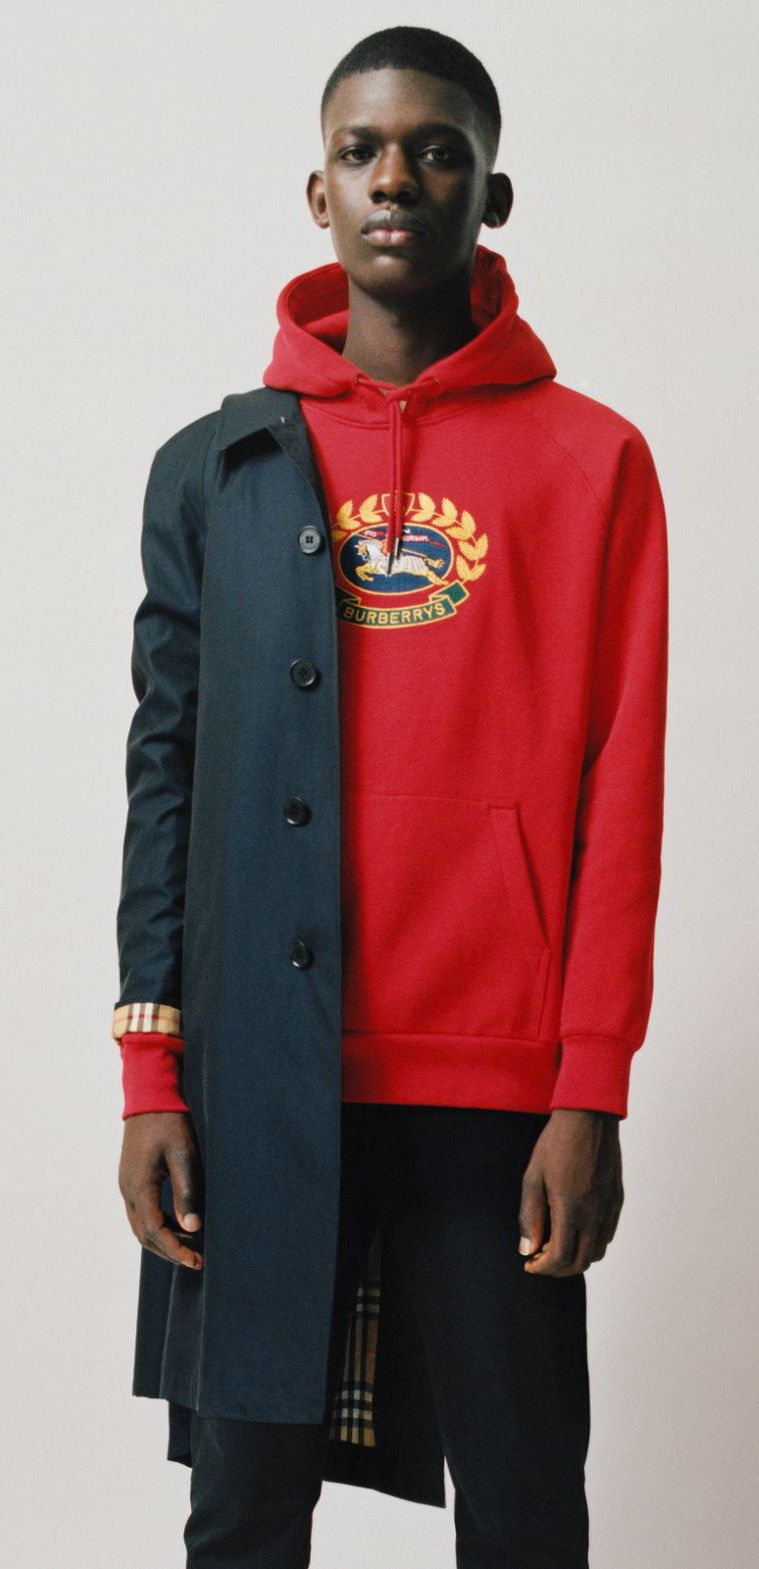 A Burberry Hoodie In Loop Back Jersey Embroidered With An Archive Crest Originally Found On Burberry Sweatsh Cool Street Fashion Hoodie Fashion Mens Outfits [ 1569 x 759 Pixel ]